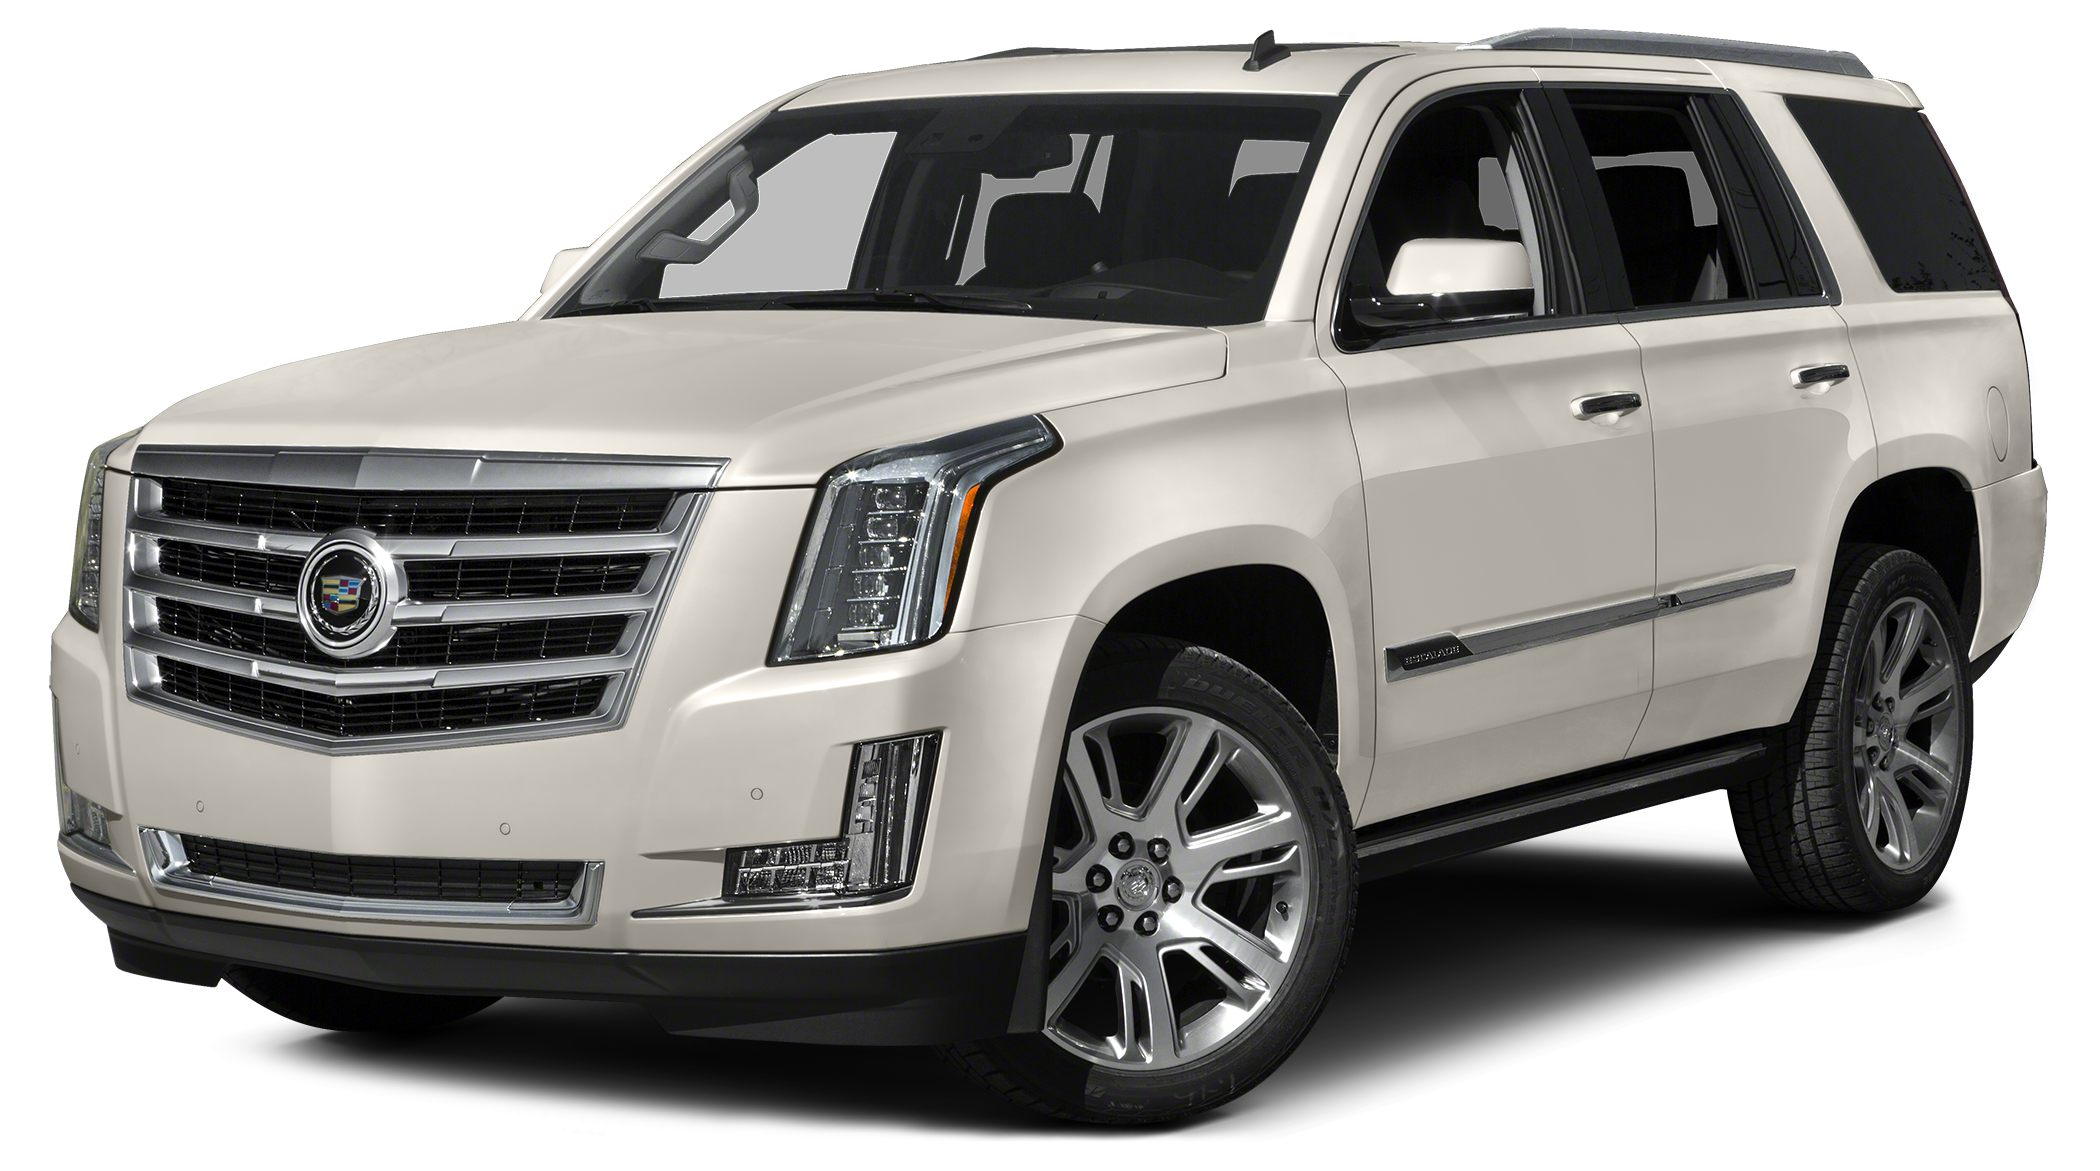 2015 Cadillac Escalade Platinum The well-recognized Escalade has been among the Kings of the SUV f